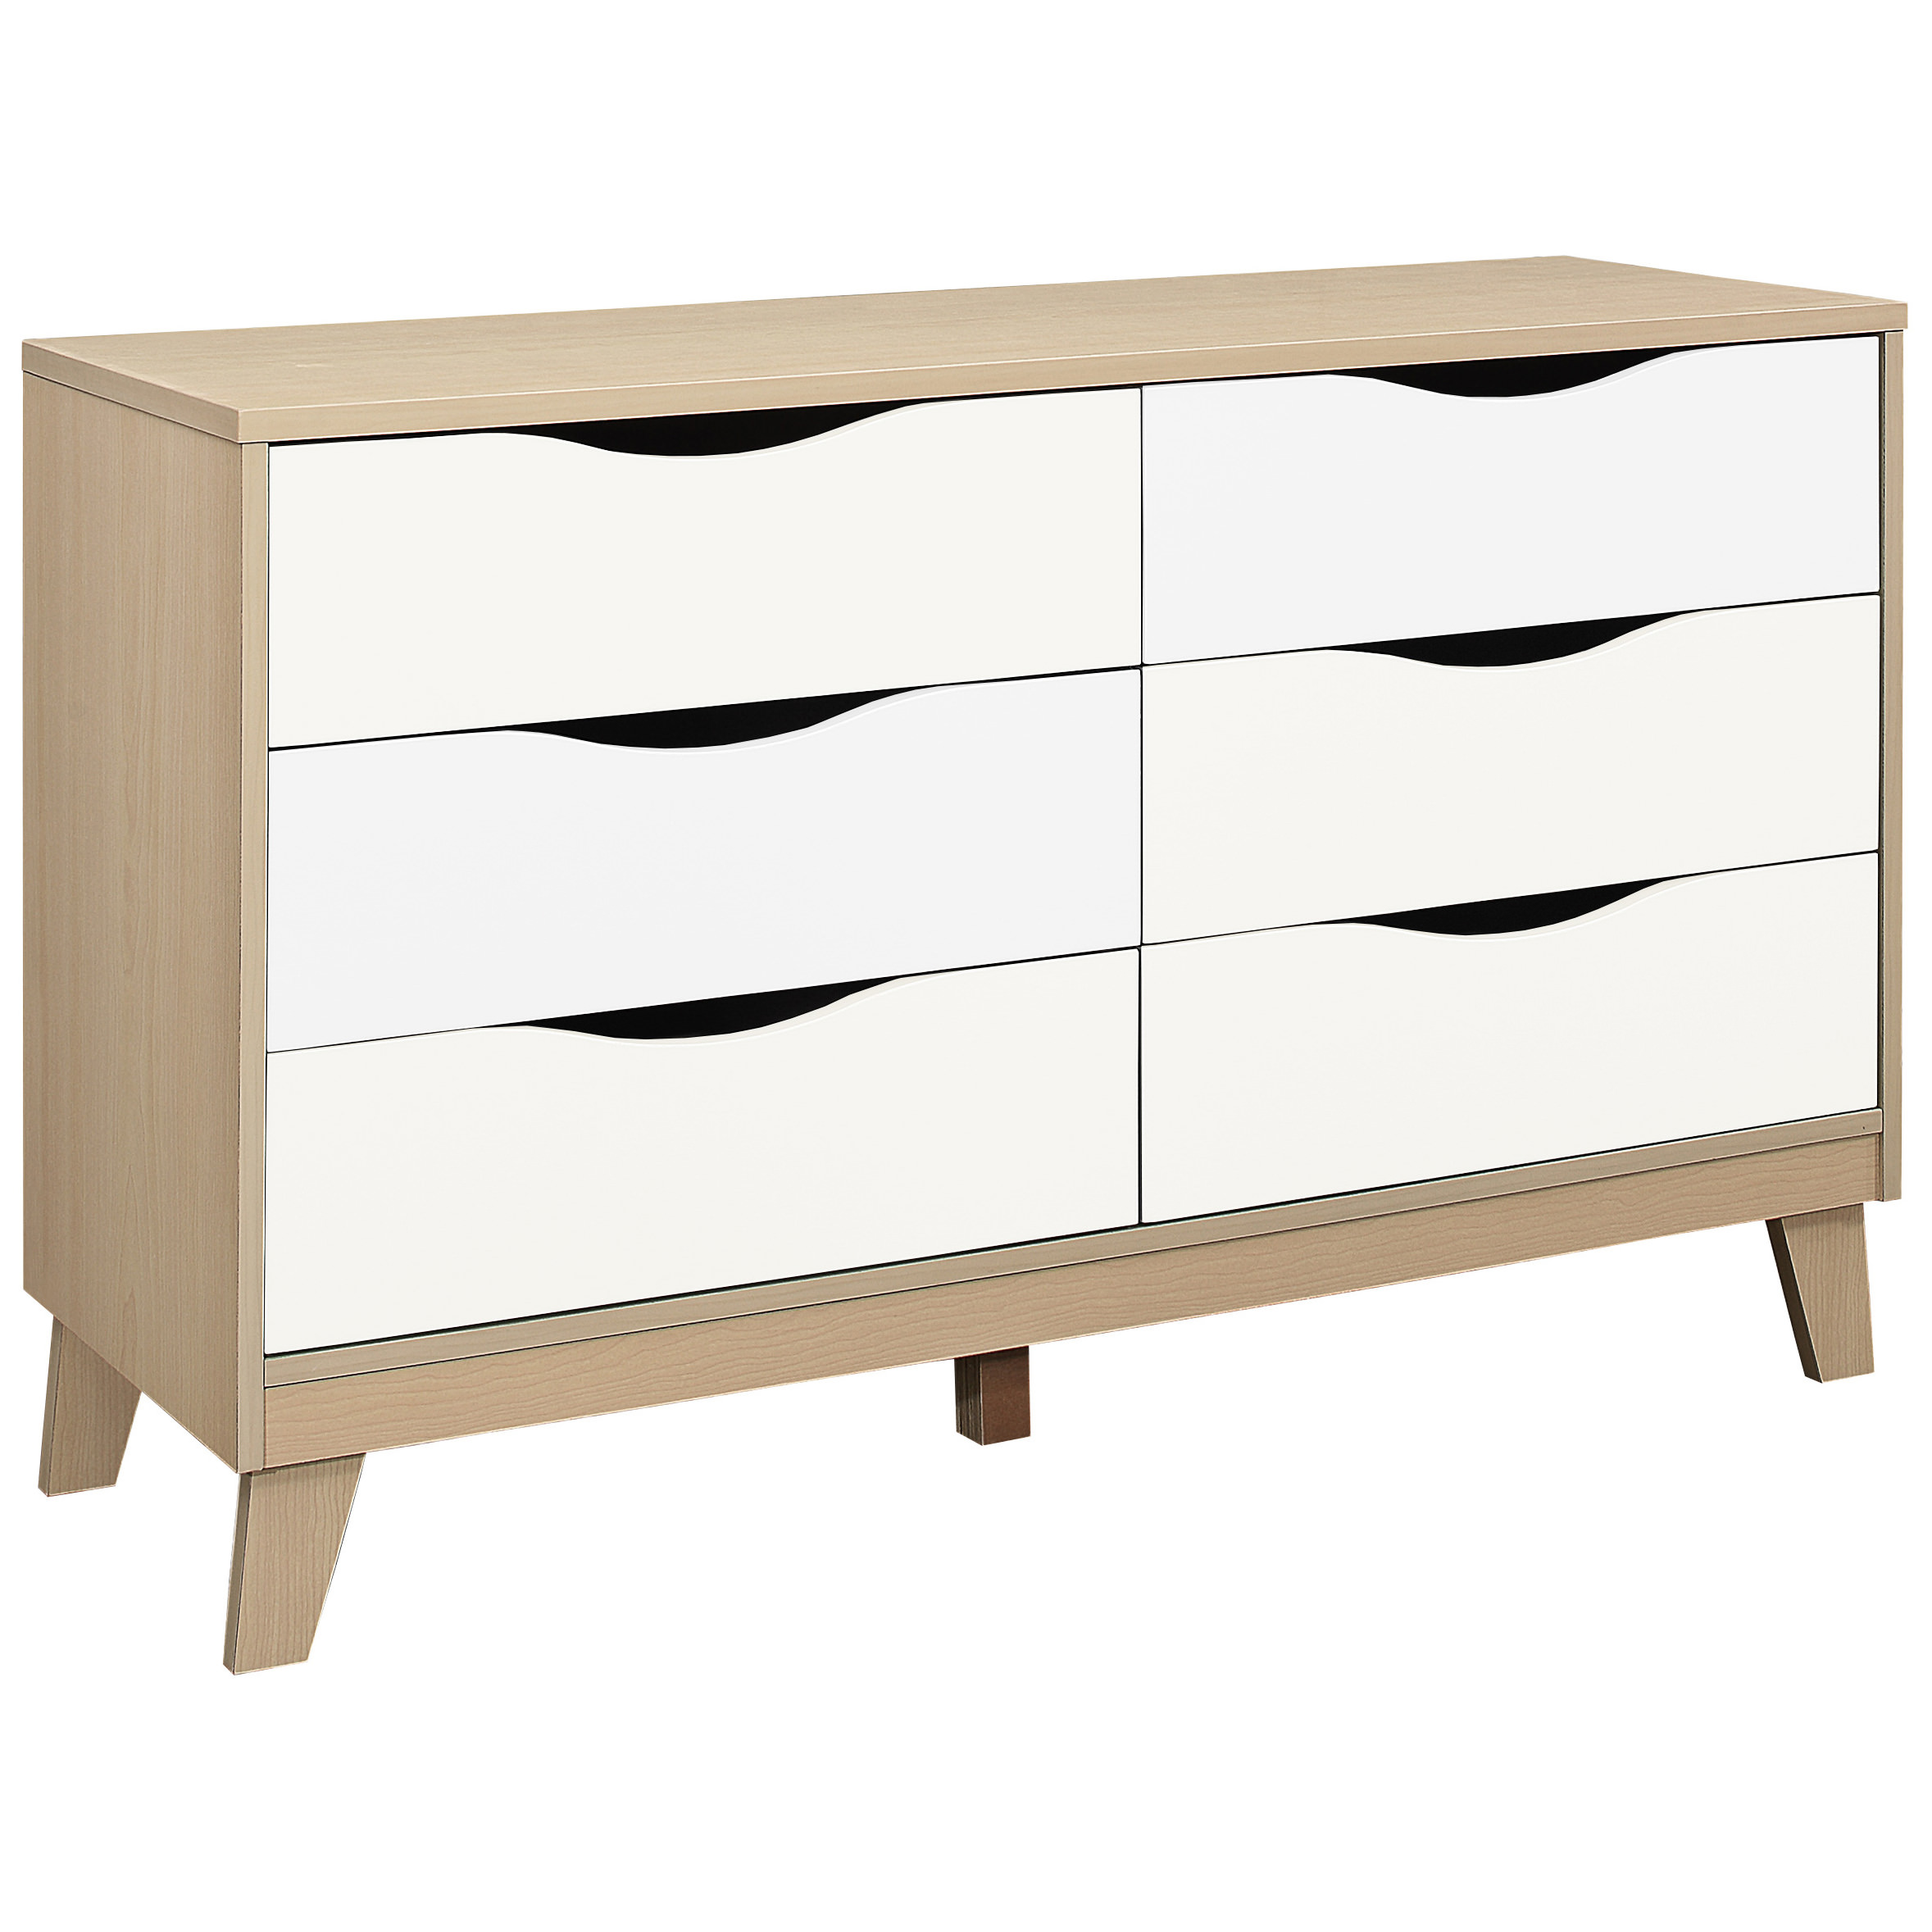 hem drawer interior dresser ideas storage tall white inspiring homeware design ikea with hemnes